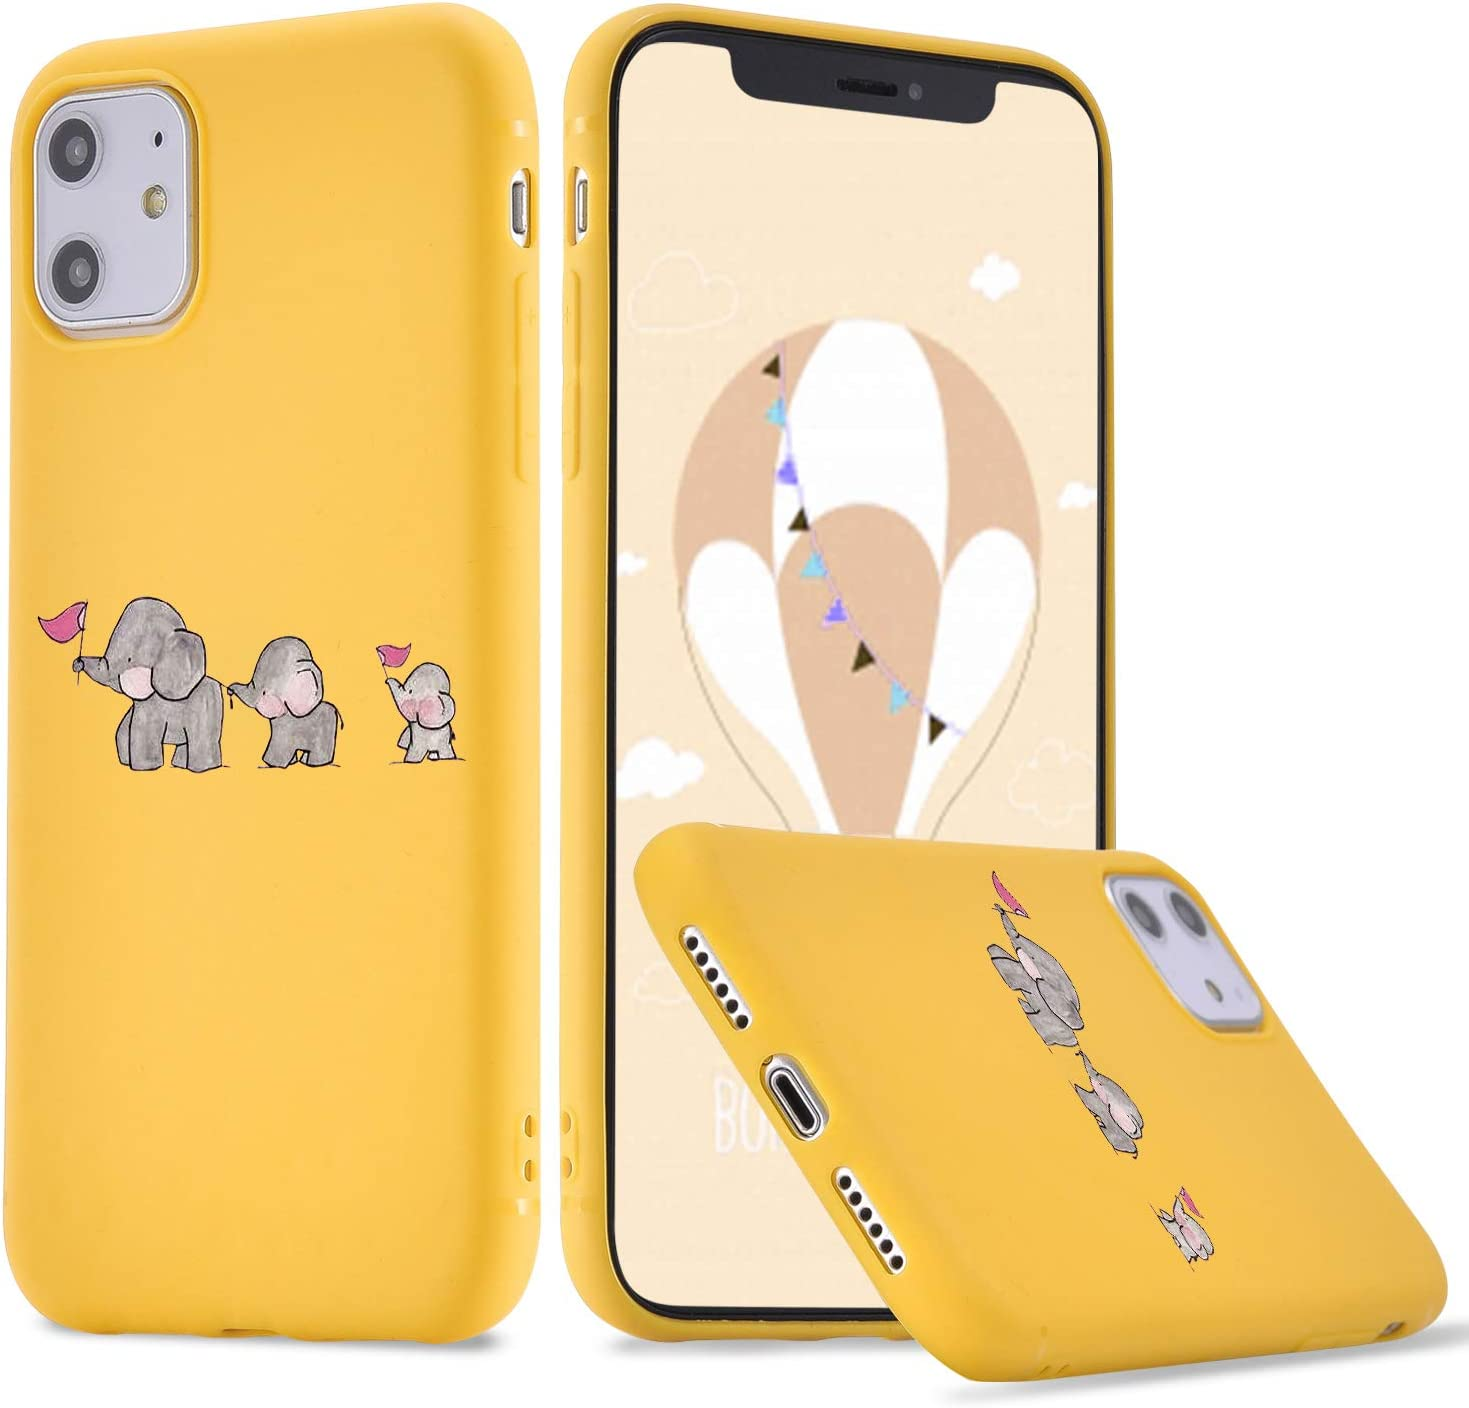 LuGeKe Elephant Phone Case for iPhone7 Plus/iPhone 8 Plus, Cute Elephant Patterned Case Cover,Soft TPU Cover Flexible Ultra Slim Anti-Stratch Bumper Protective Boys Phonecase(Elephant Family)